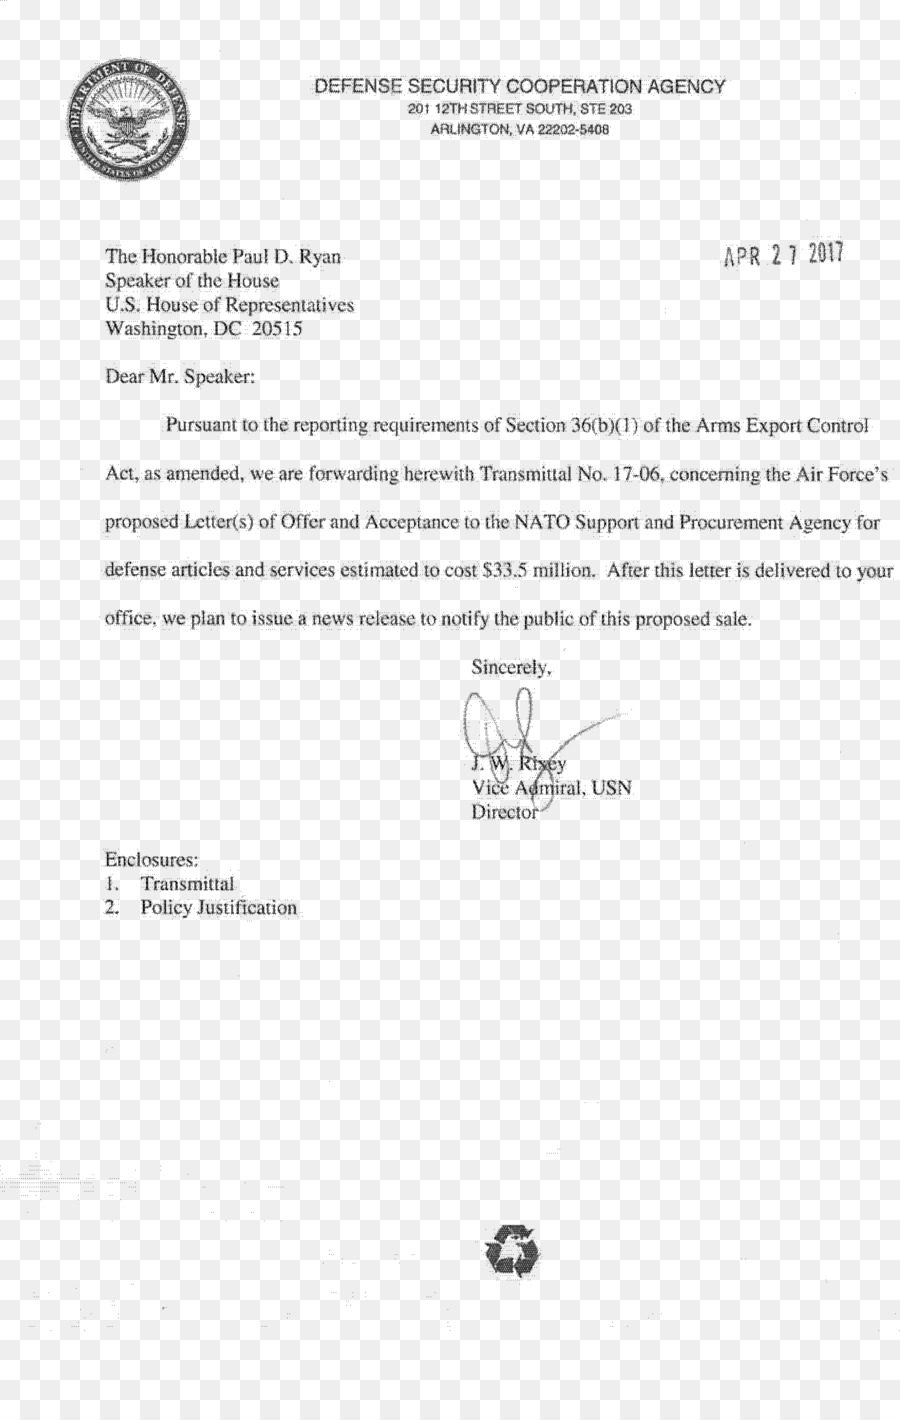 Template Letter of transmittal Document PDF - Arms Export Control ...